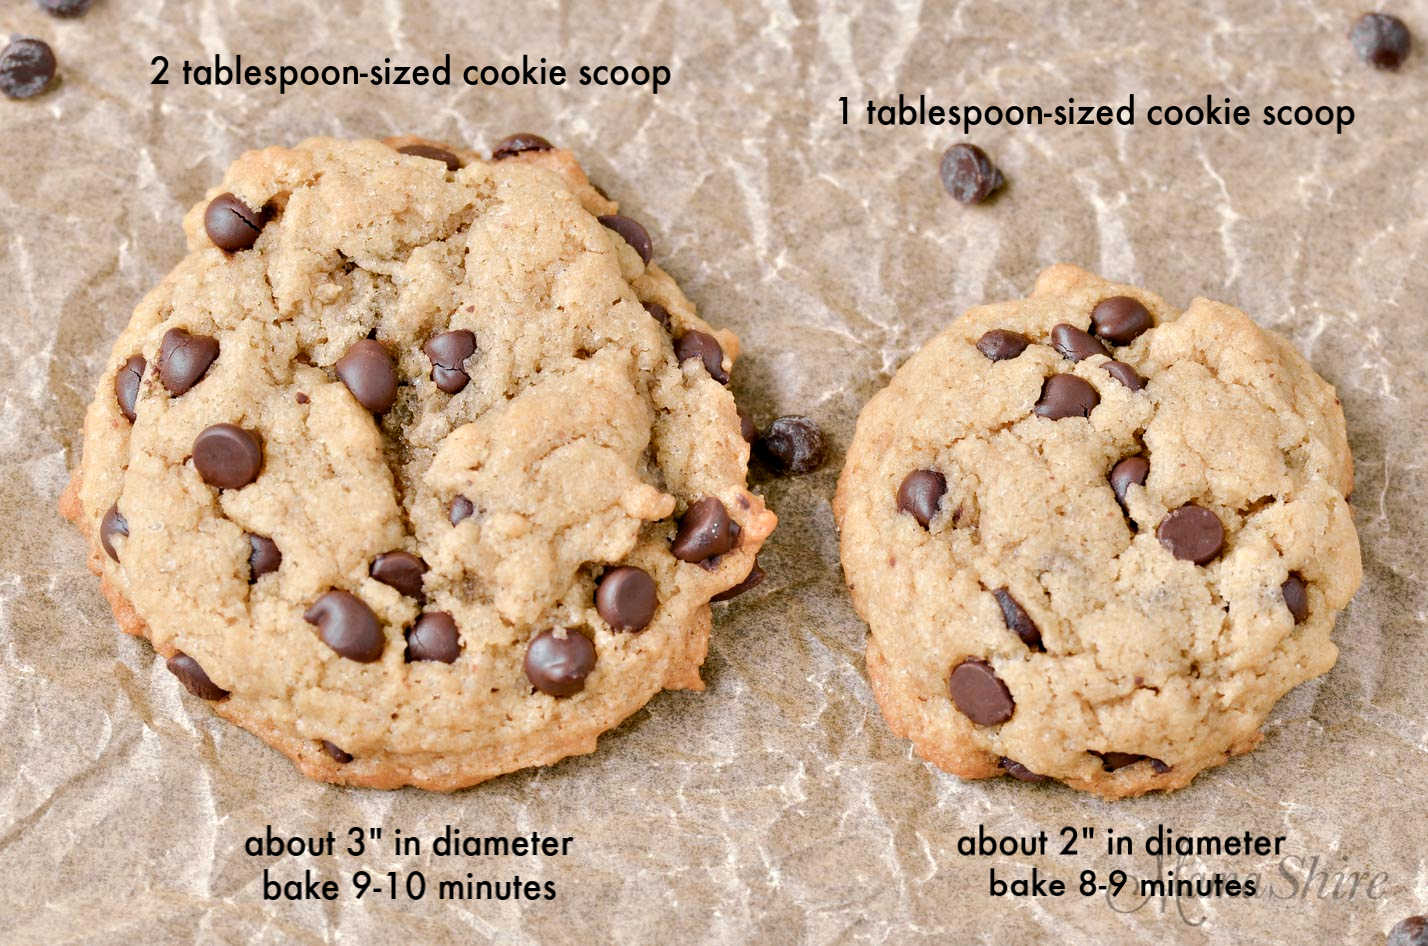 Two cookies but different sizes to compare cookie scoops.